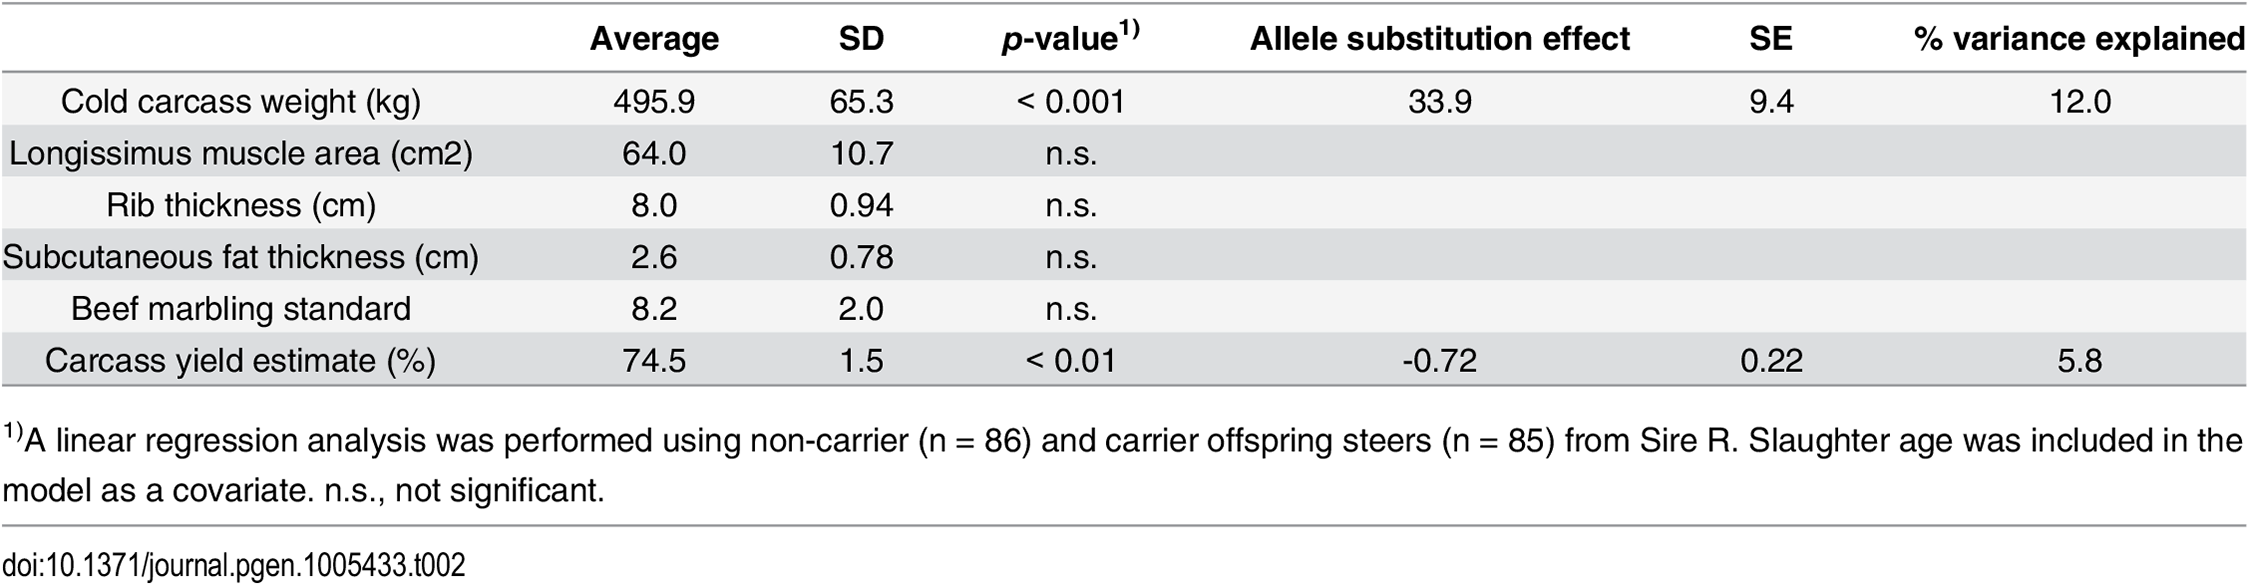 Effect of the risk allele on carcass traits.